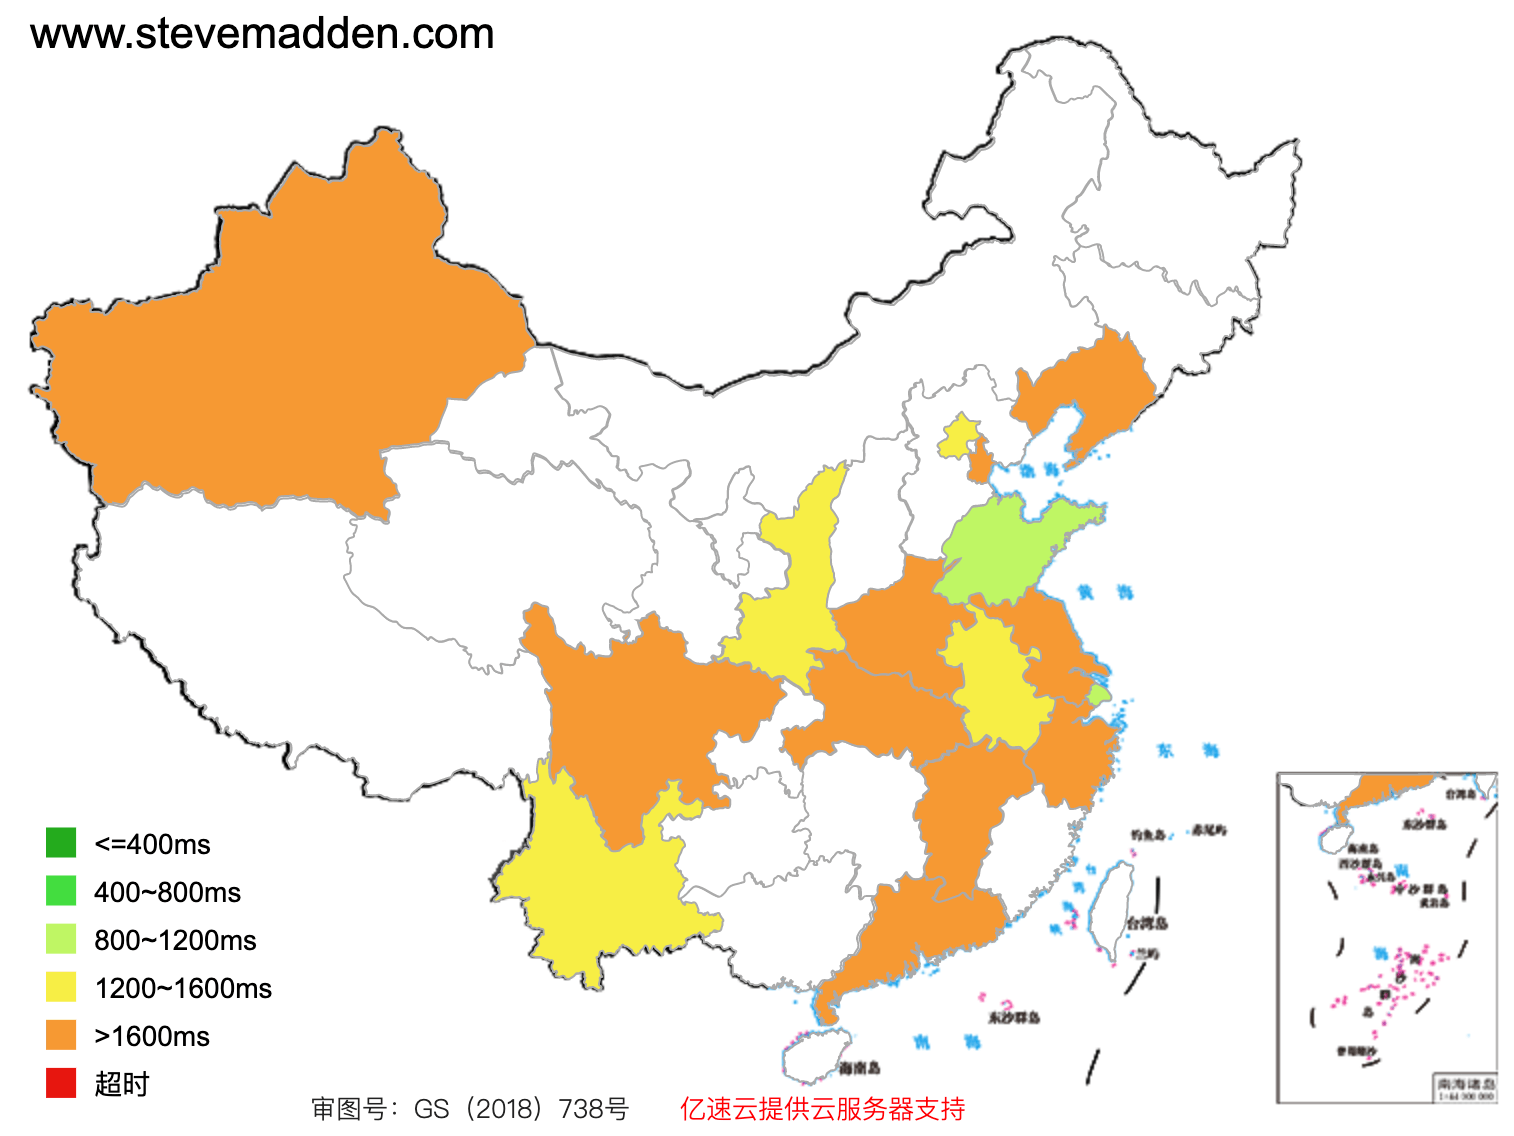 www.stevemadden.com access speed across mainland China (green: fast, red: slow)